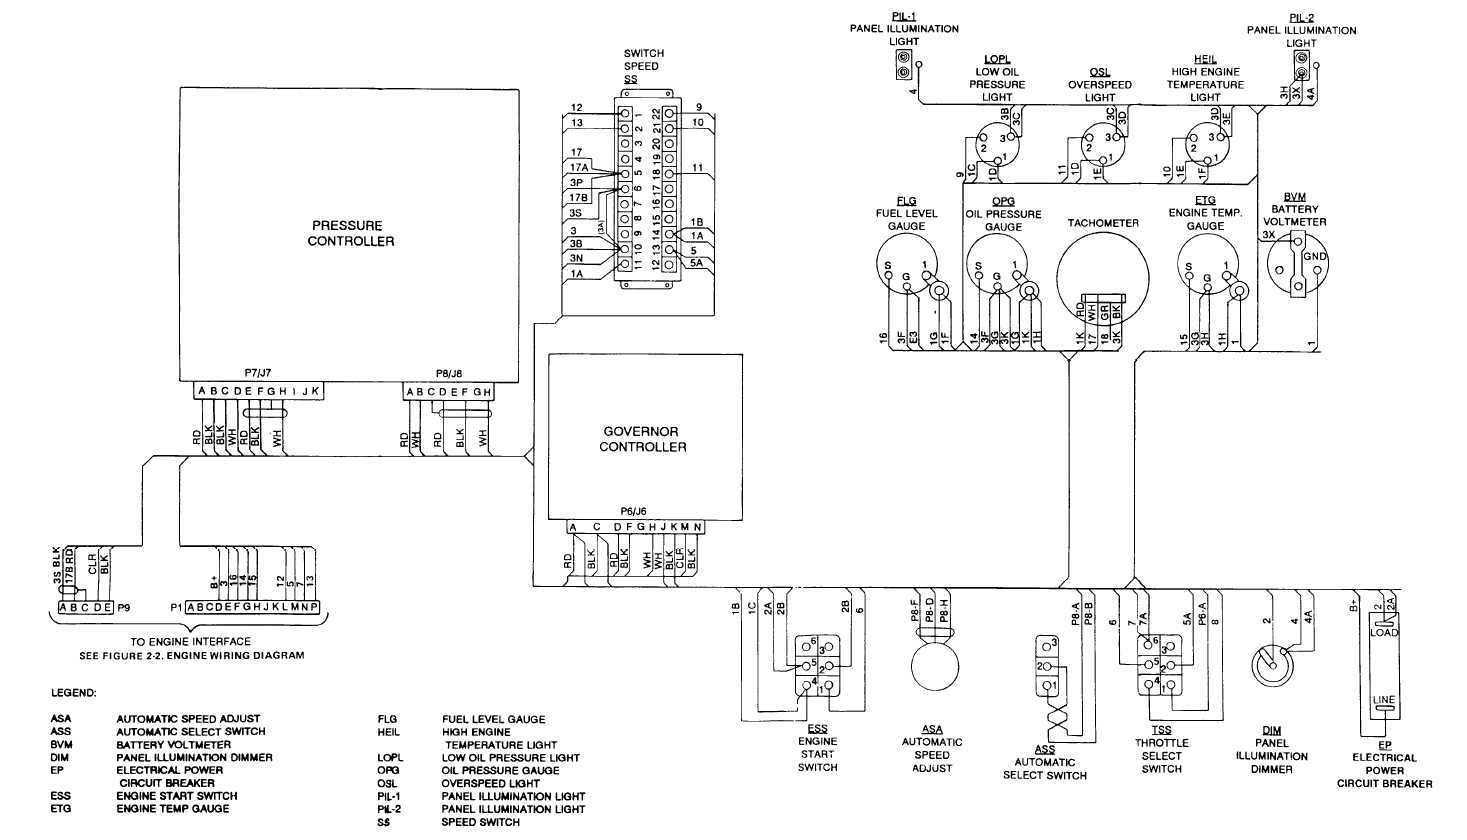 hight resolution of wiring diagram of control panel wiring diagram article reviewcontrol panel wiring diagram dimmer my wiring diagramcontrol